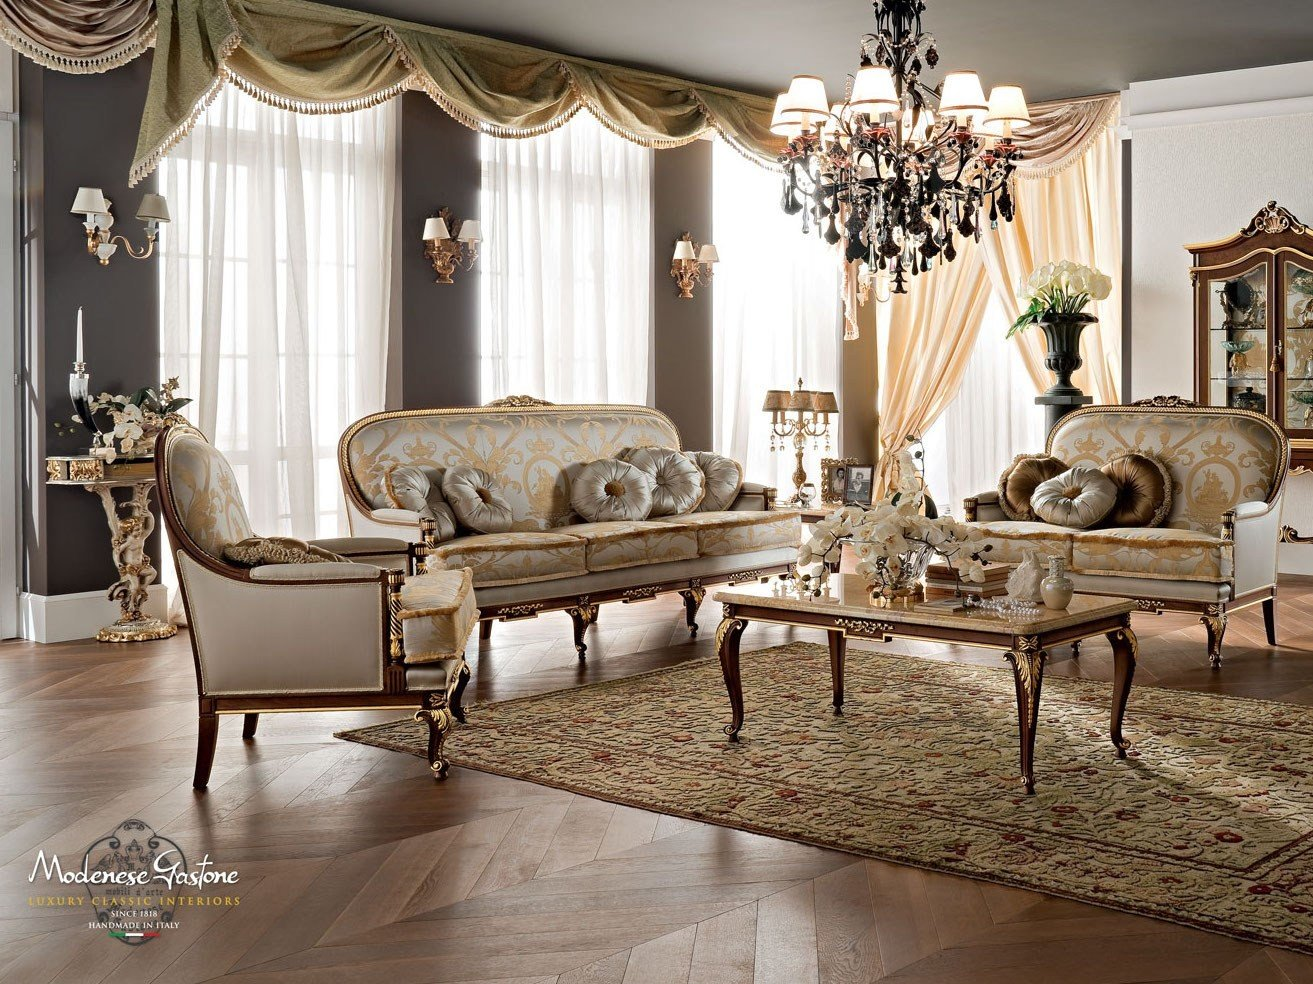 12418 sofa by modenese gastone group for Modenese gastone